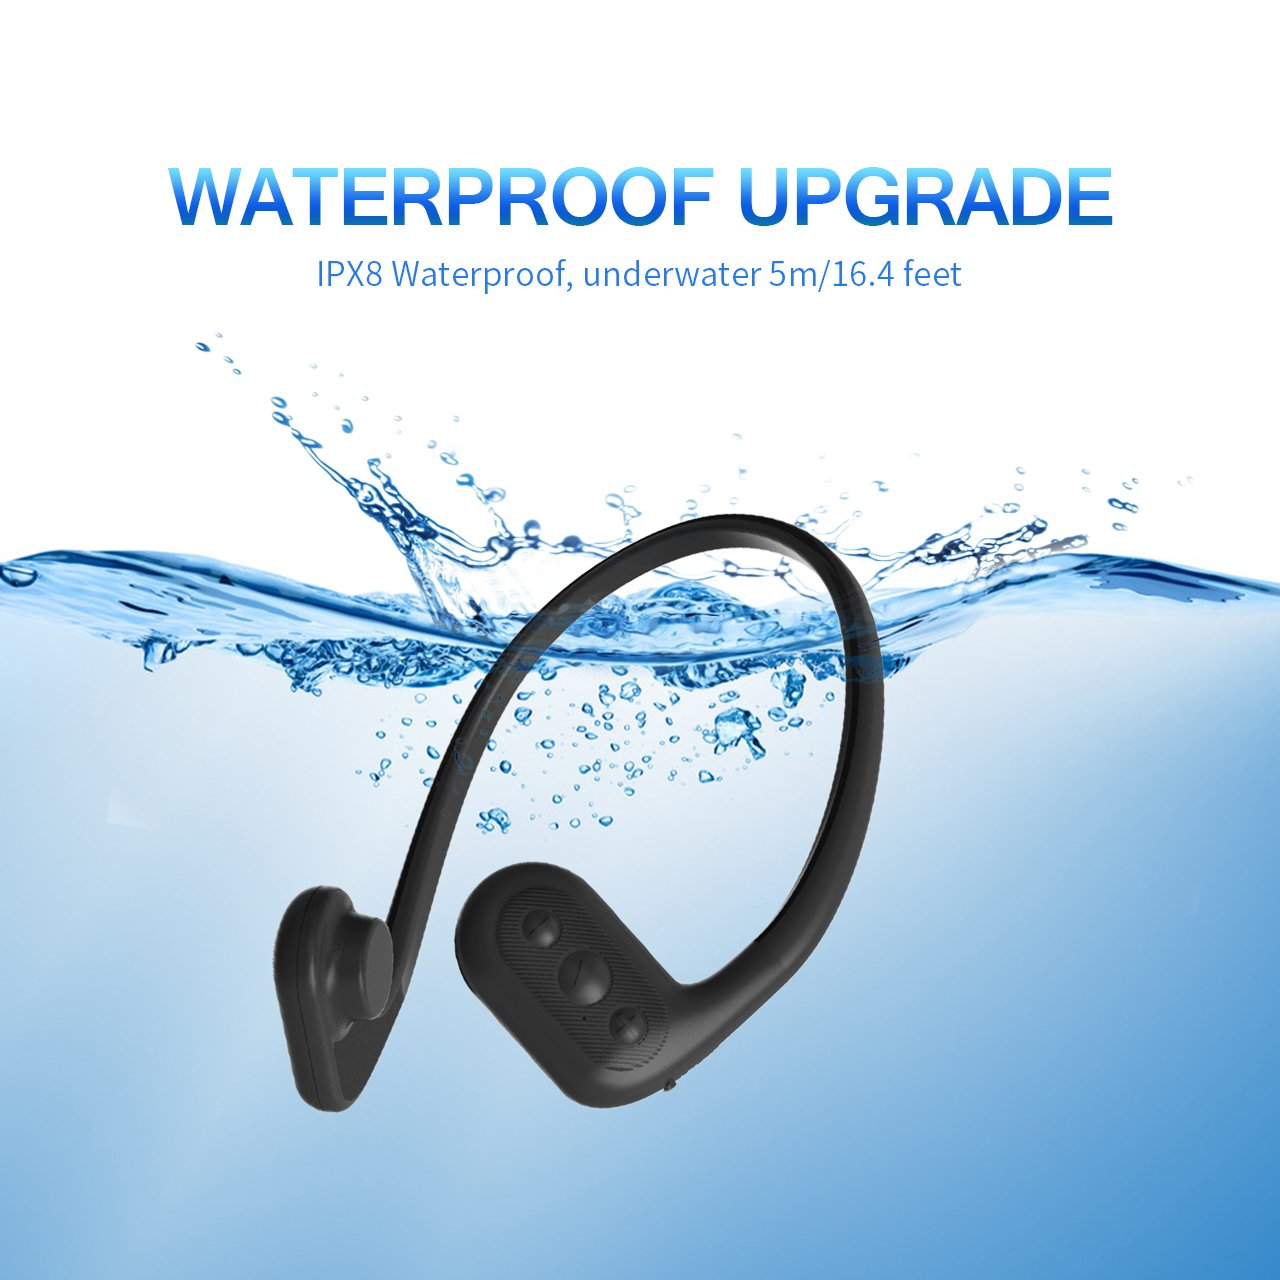 Tayogo Bone Conduction 8GB Waterproof MP3 Player Swimming Headphones with Shuffle Feature Support FM - Black